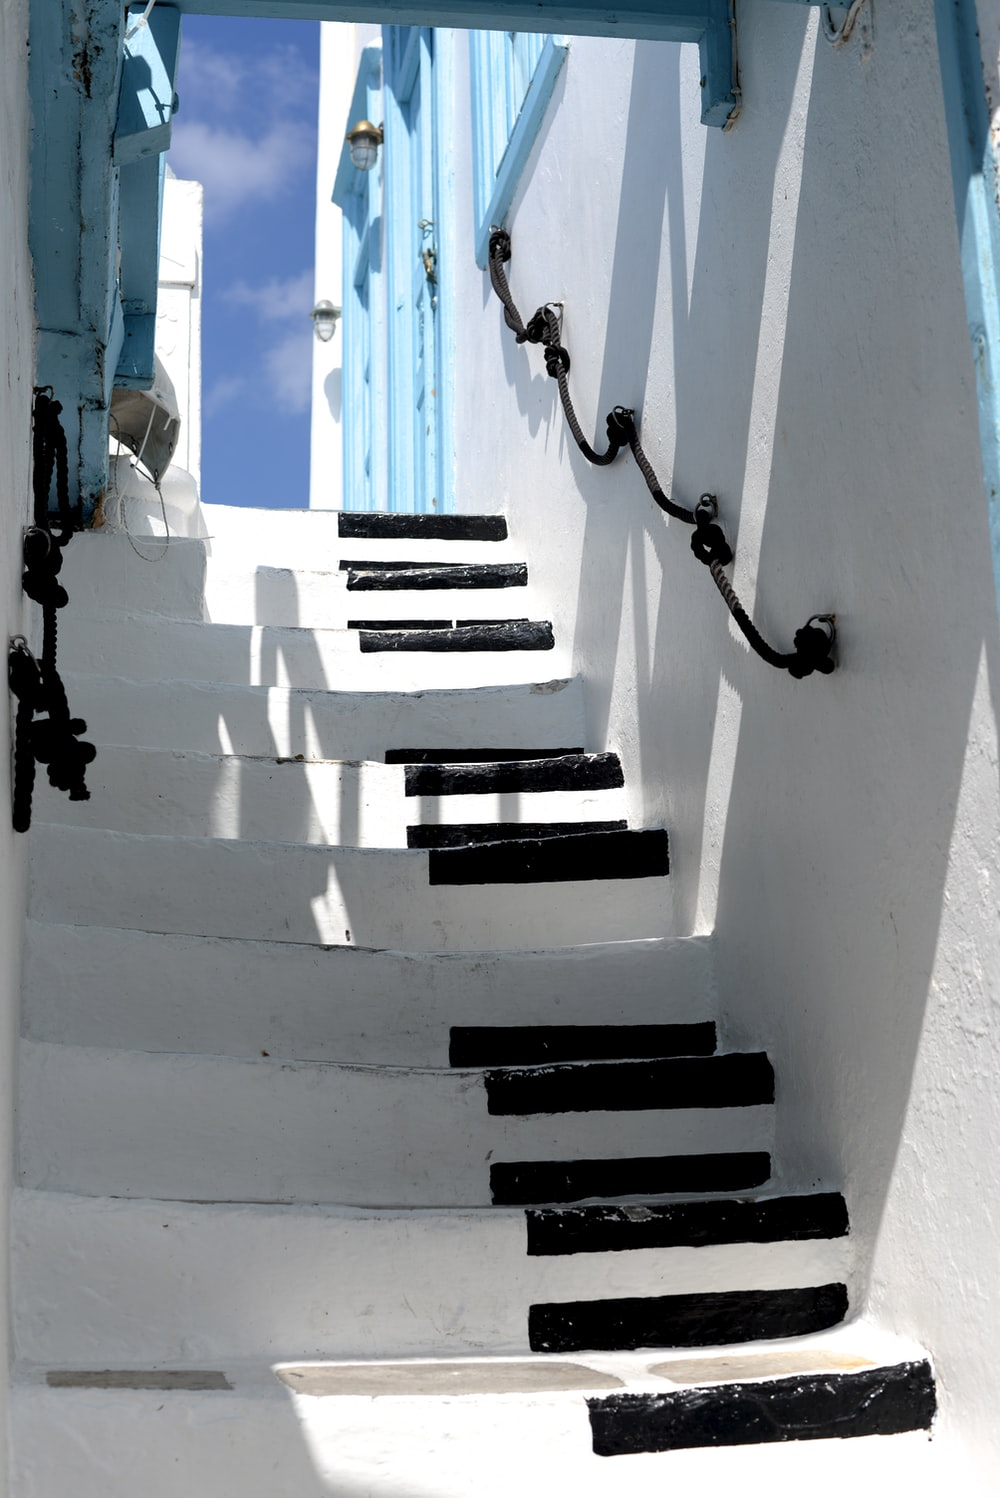 white and black piano keys-themed stairs during daytime